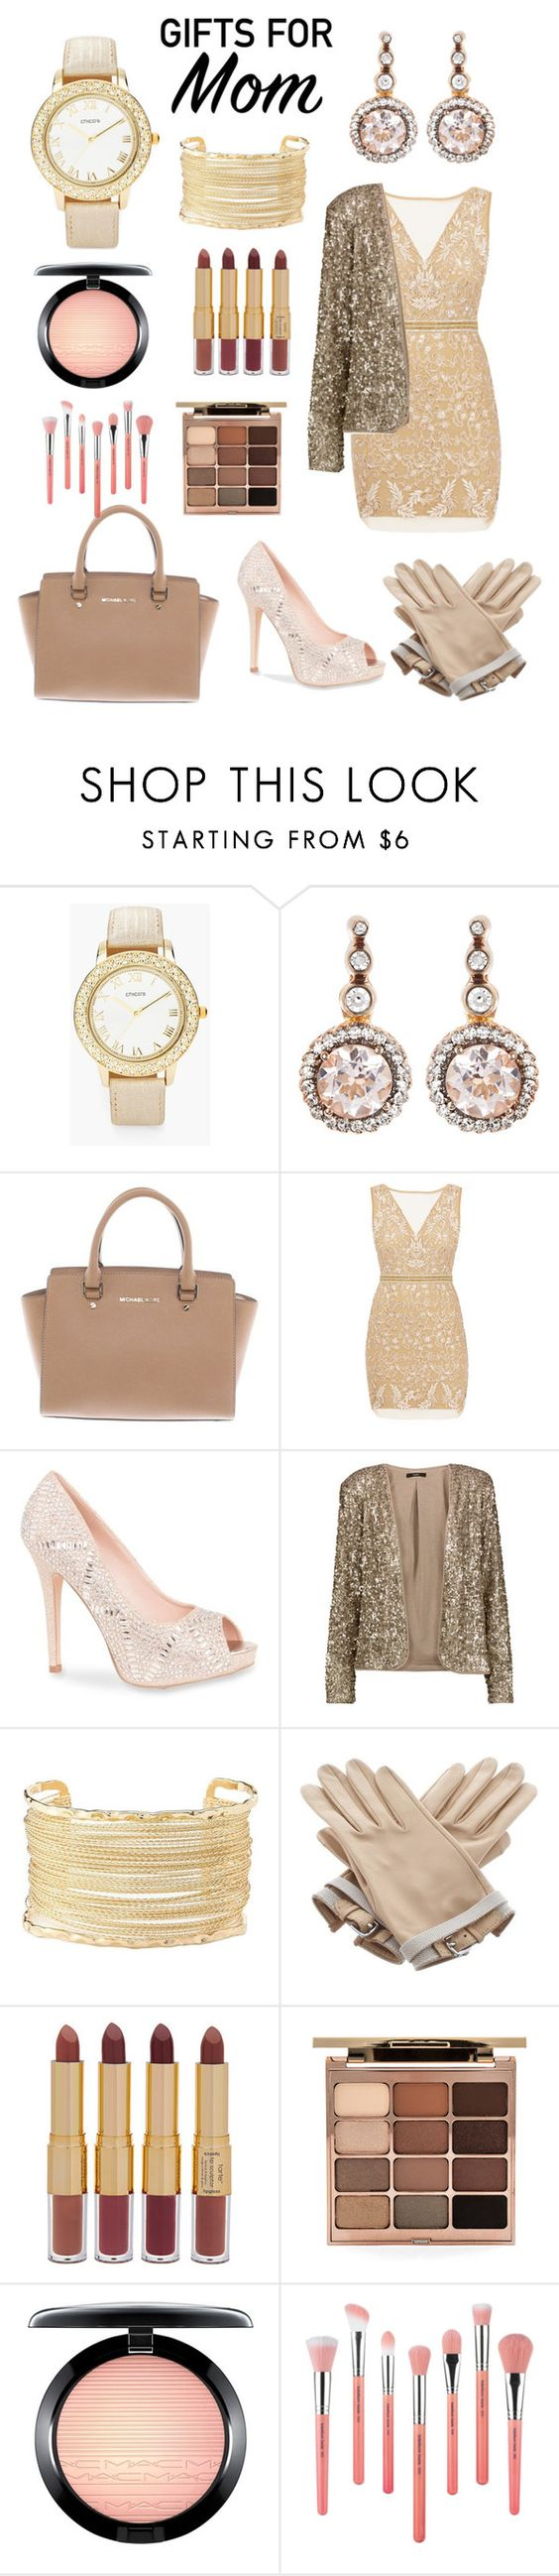 """""""love you MOM"""" by lodonroxylove ❤ liked on Polyvore featuring Chico's, Selim Mouzannar, Michael Kors, Nicole Miller, Lauren Lorraine, Tart, Charlotte Russe, Hermès, tarte and Stila"""